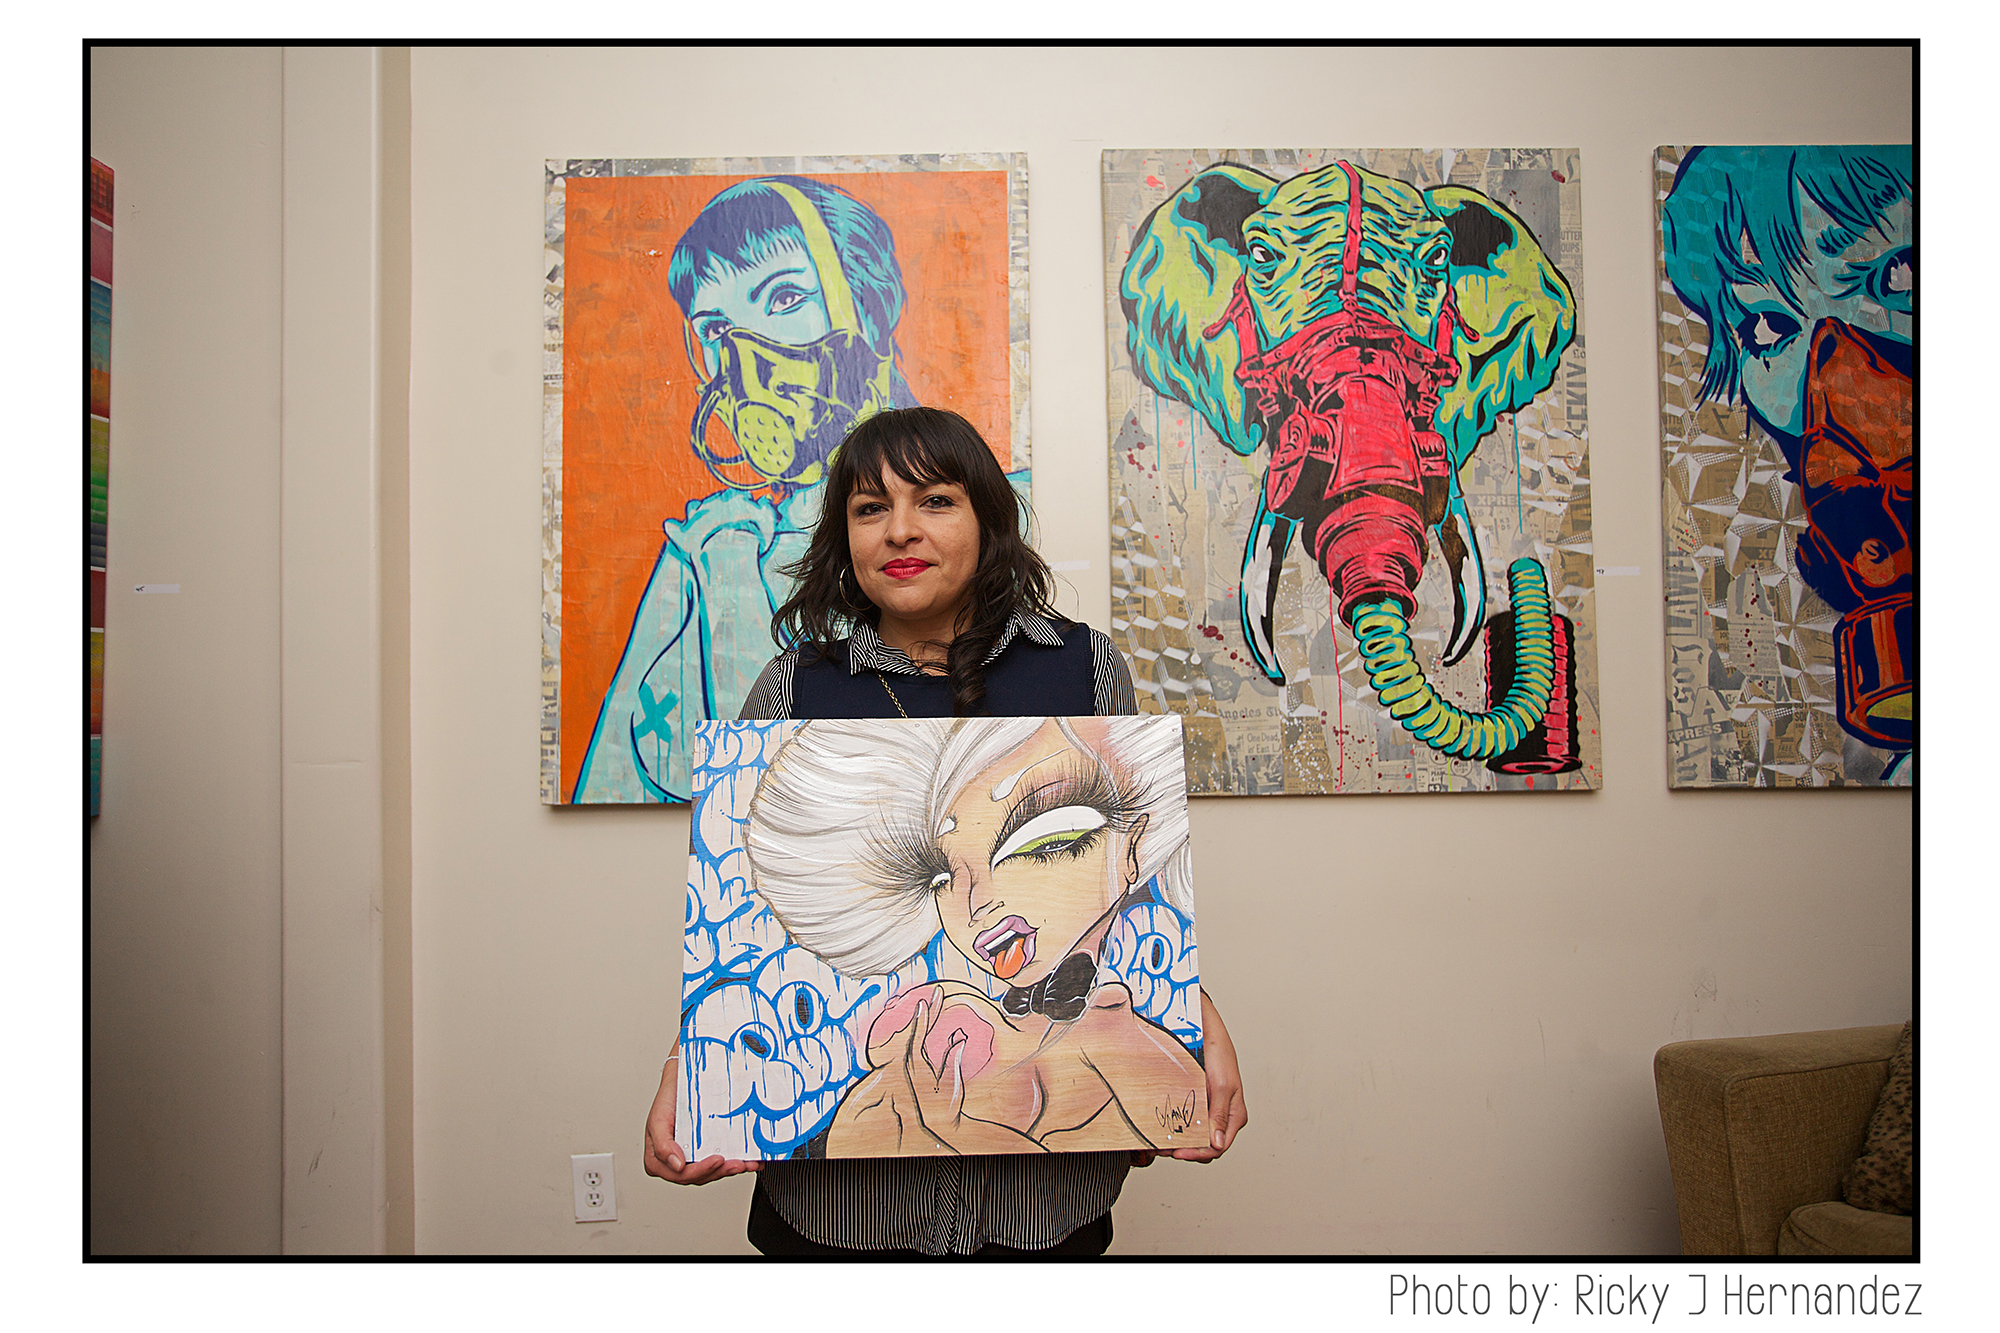 Ricky-J-Hernandez-photography-Oh-poop-I-have-Lupus-art-show-for-Delia-sweet-tooth-in-Privy-studio-Los-Angeles-CA-049